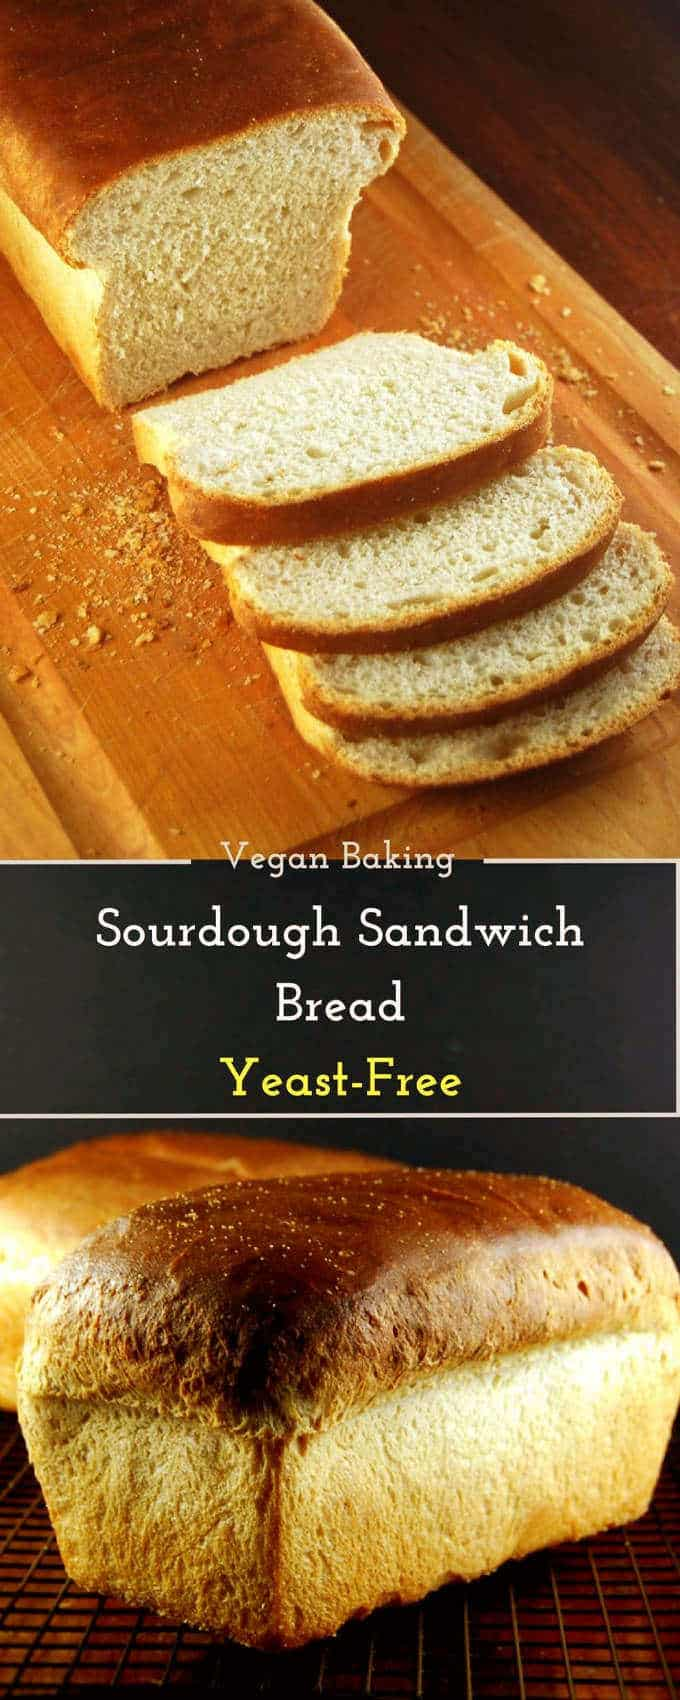 Vegan Sourdough Sandwich Bread